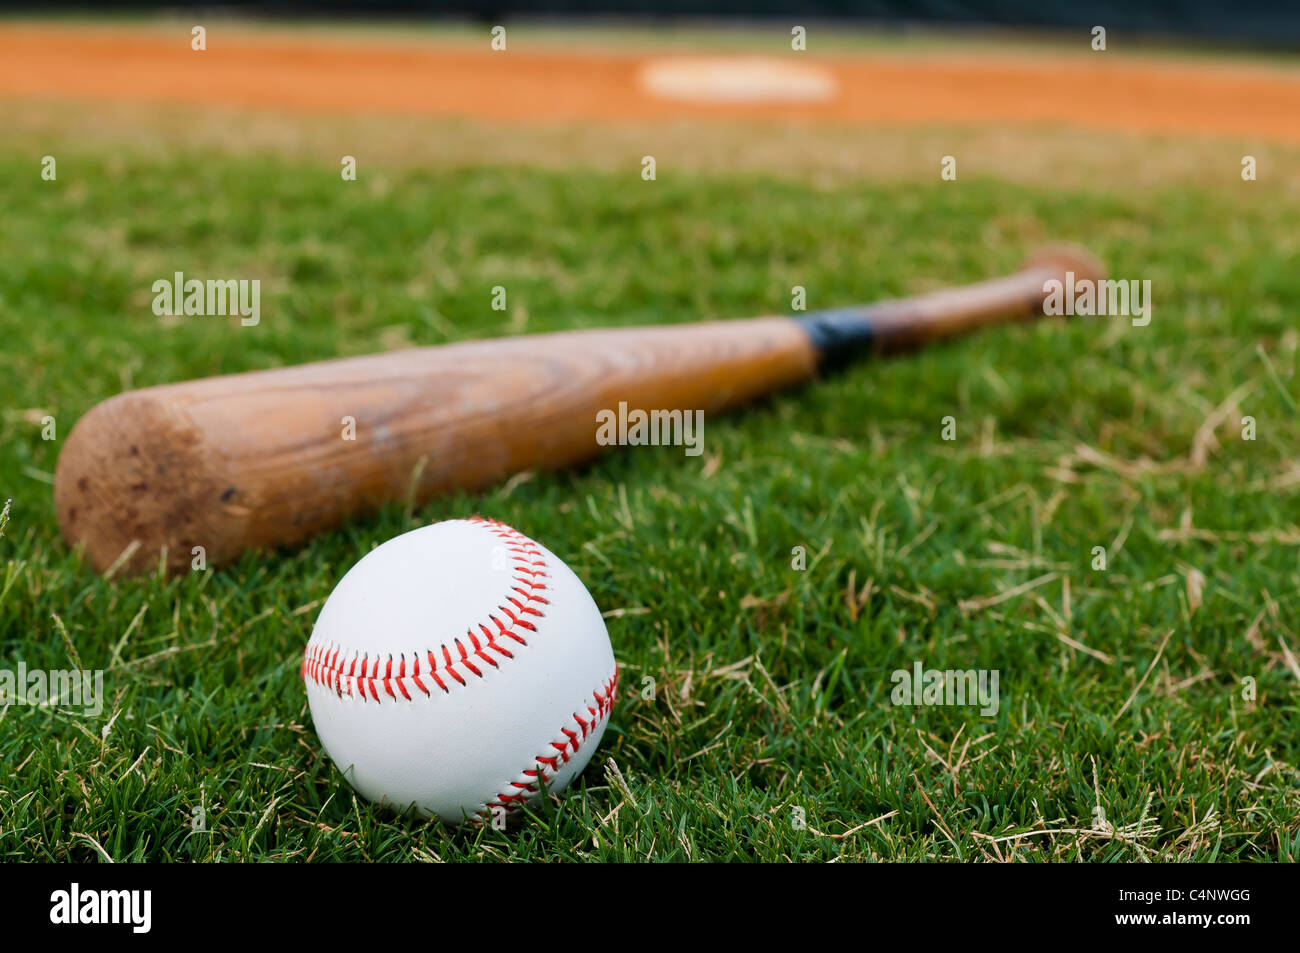 Baseball and bat on field with base and outfield in background. - Stock Image